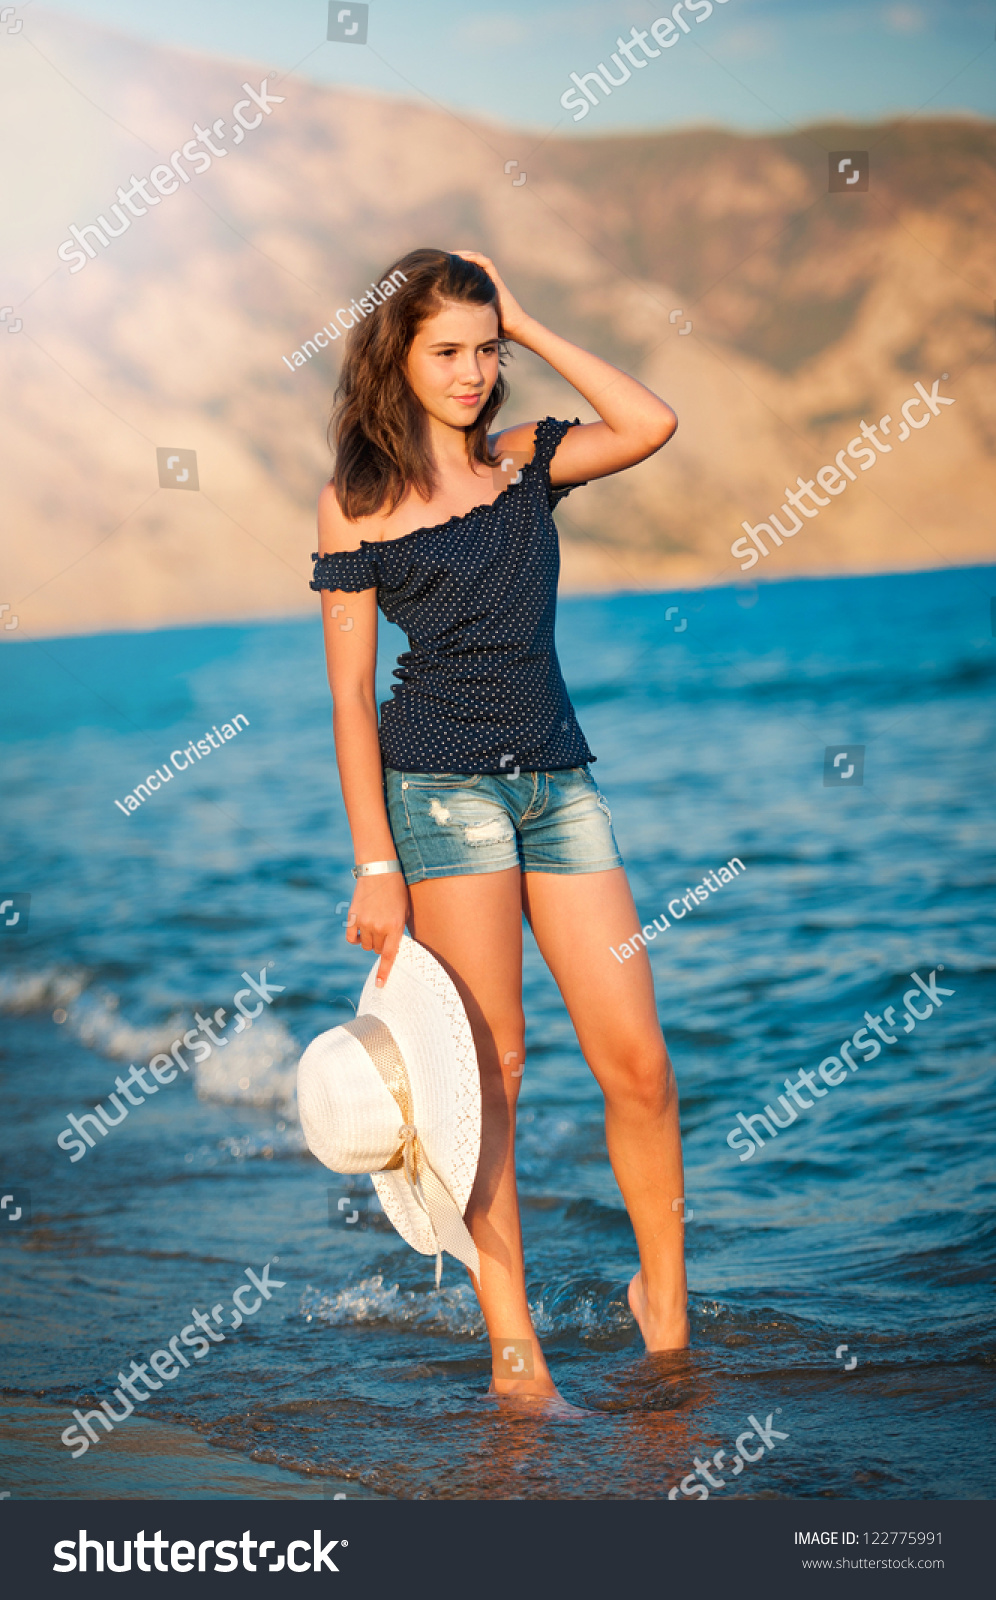 Beautiful teen girls at the beach that can